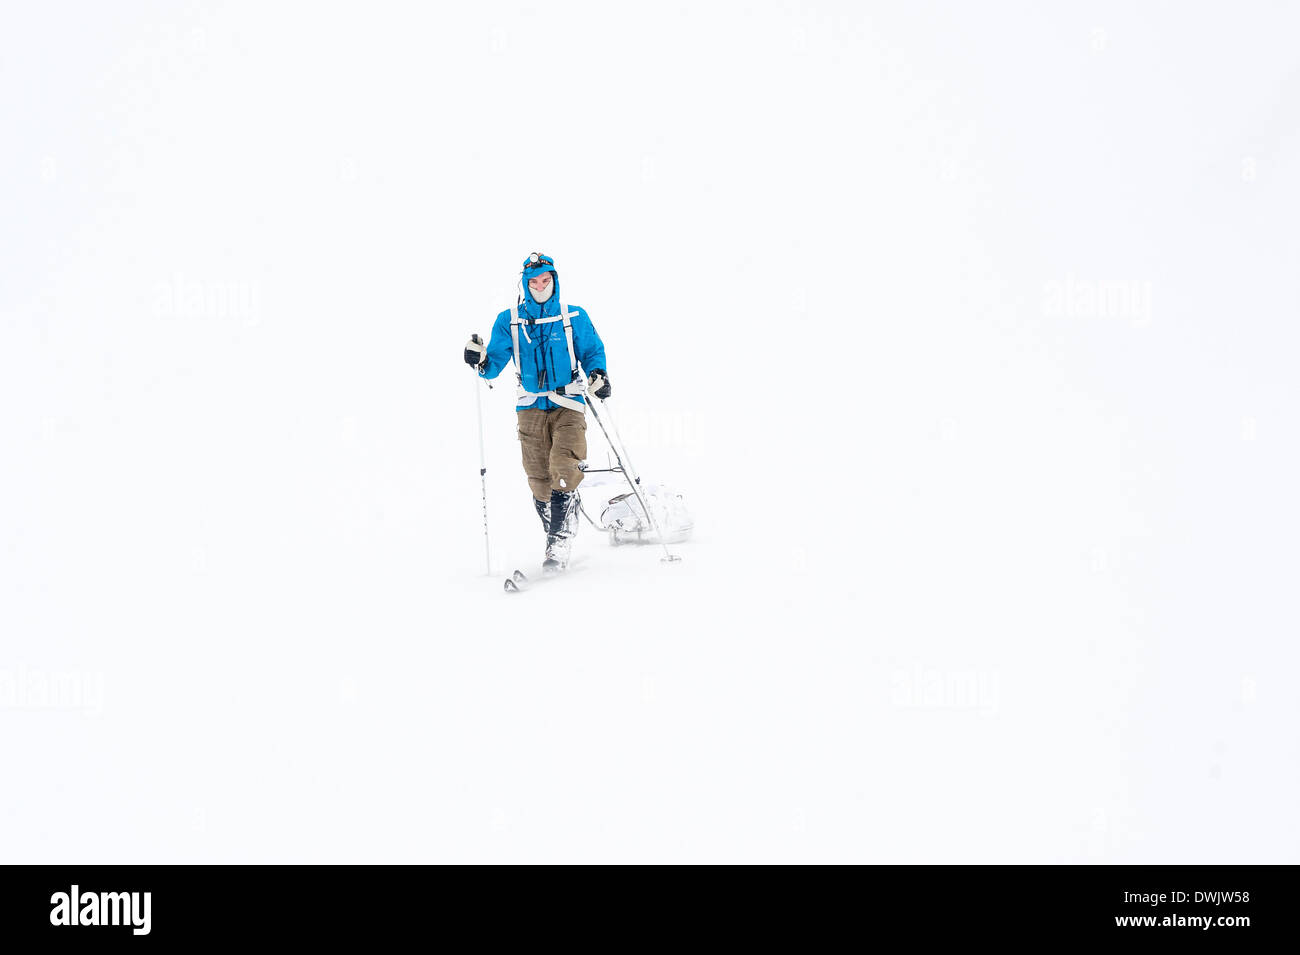 A lonesome skier in whiteout at the Hardangervidda plateau, Norway during Expedition Amundsen 2014. Stock Photo